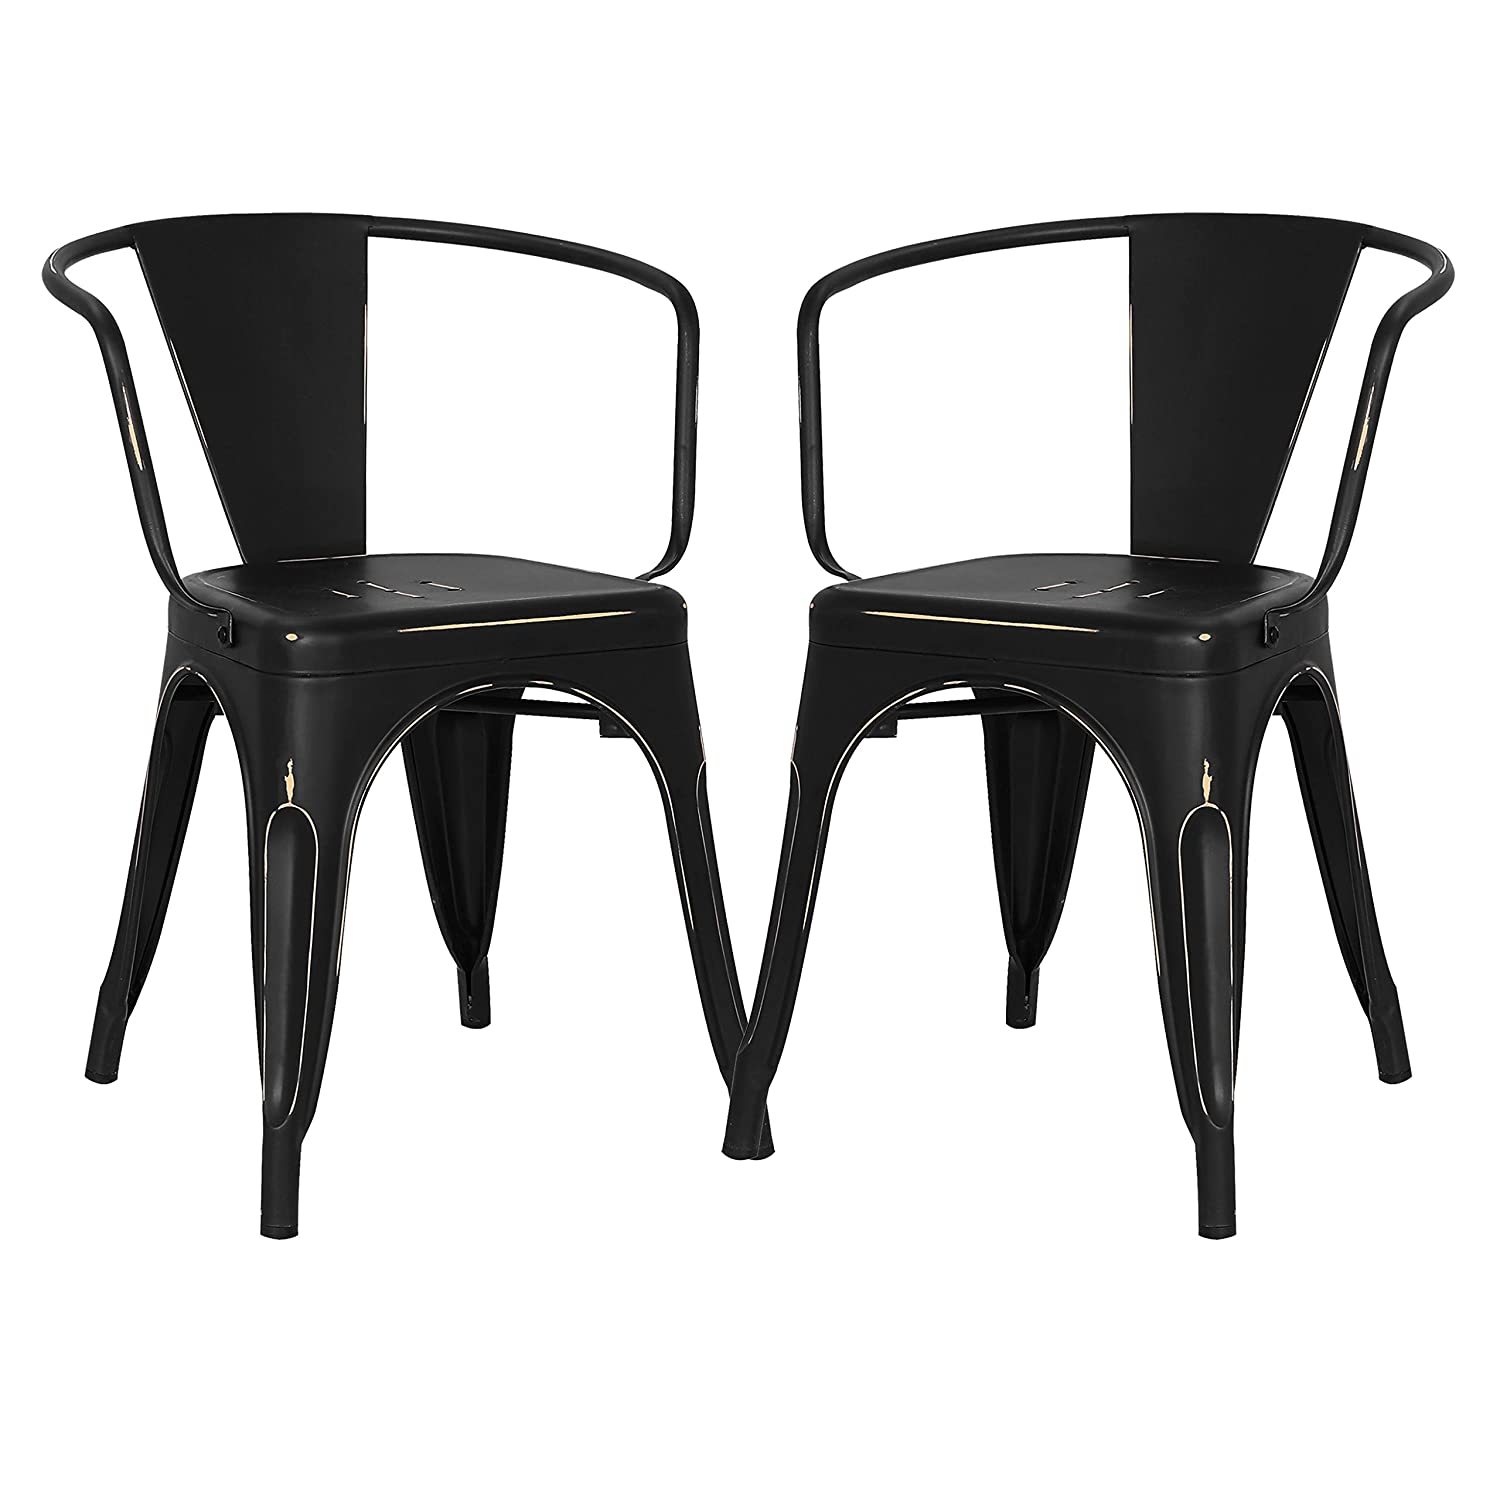 Poly and Bark Trattoria Arm Chair in Distressed Black Set of 2